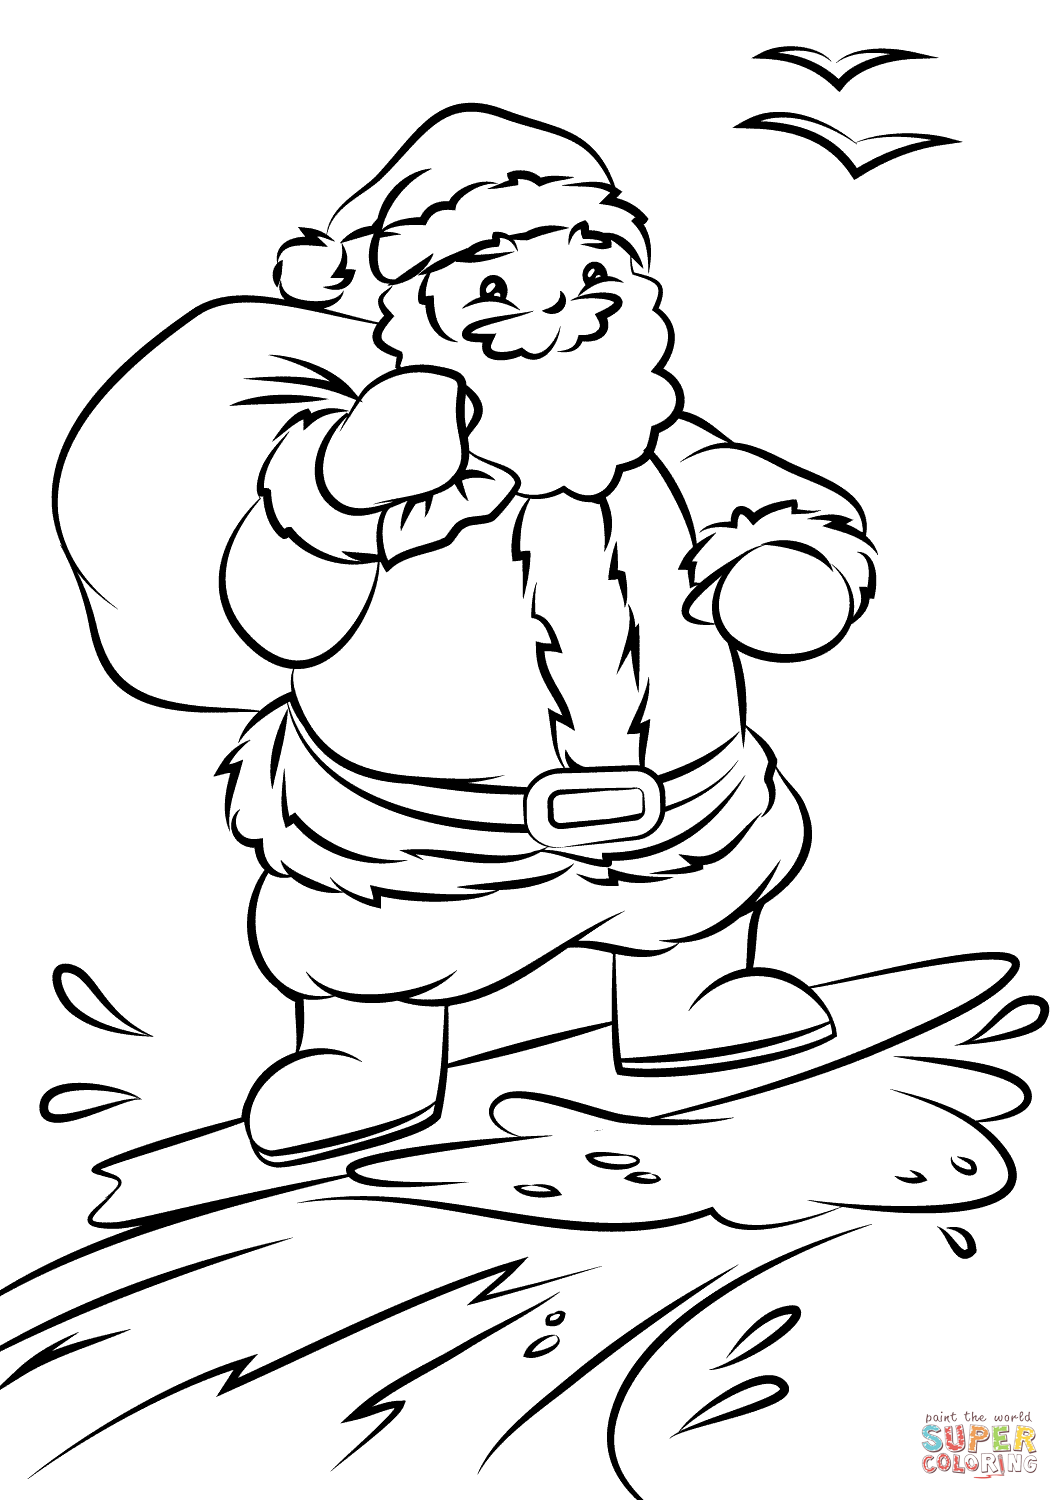 Santa Suit Coloring Page With Surfing Colouring Google Search Christmas STAMPS